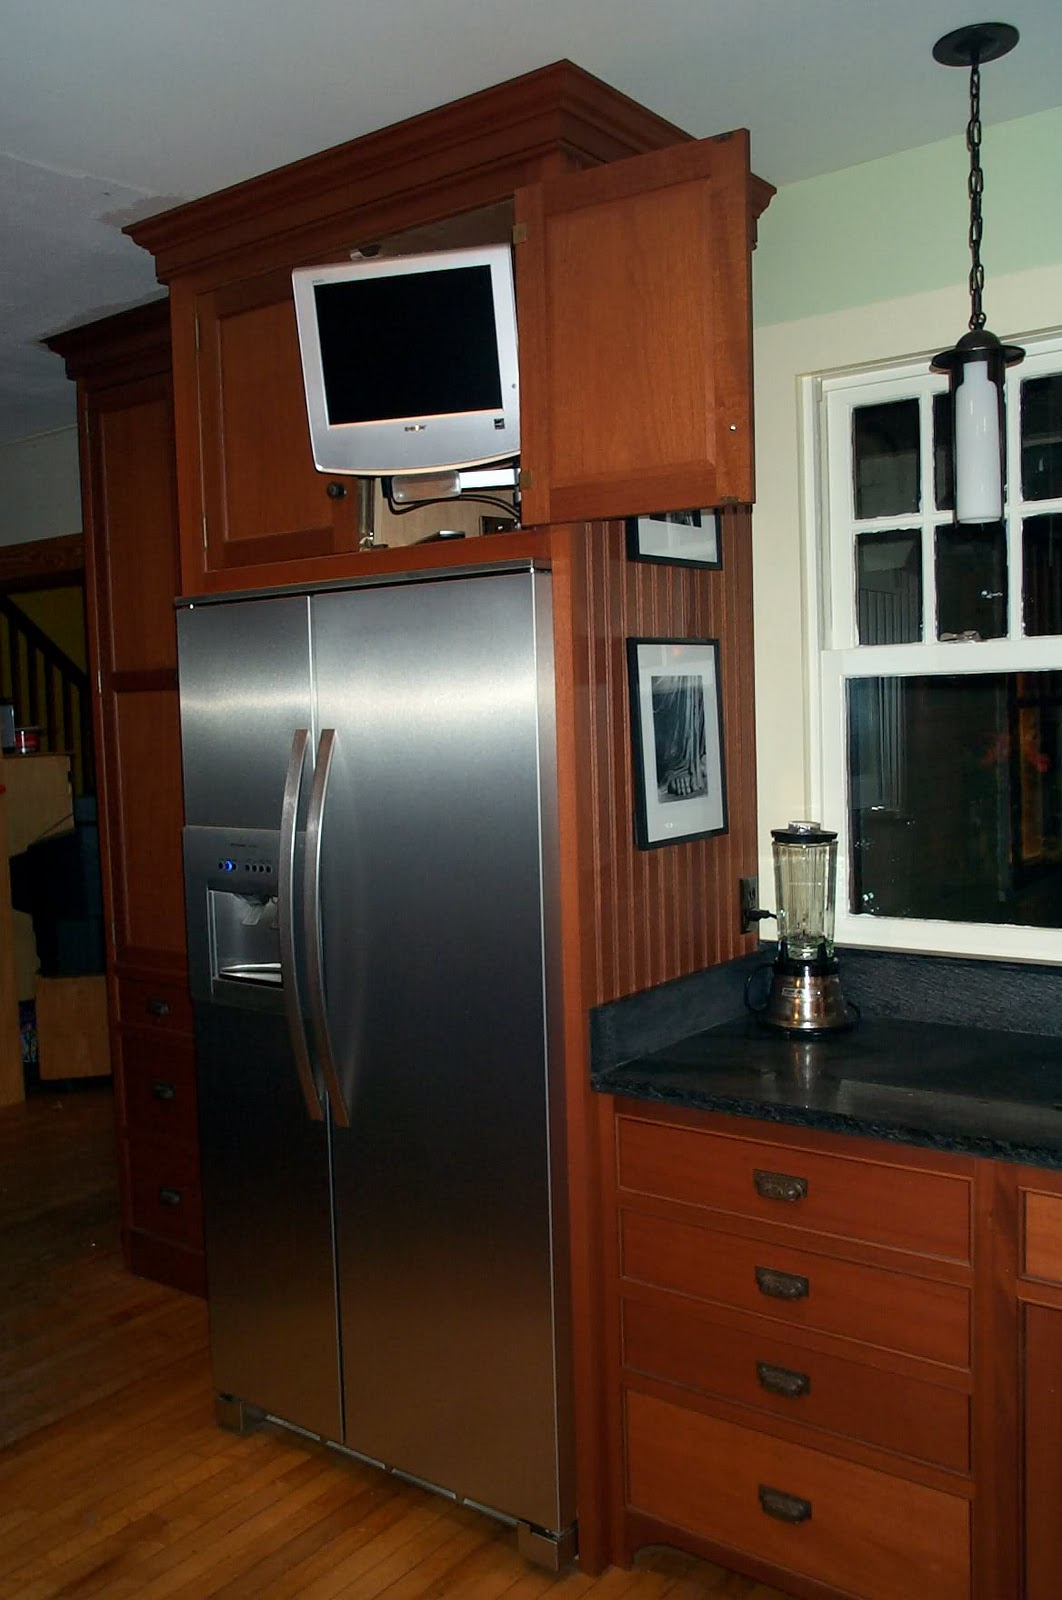 In My Hummel Opinion: Cabinets Over the Refrigerator